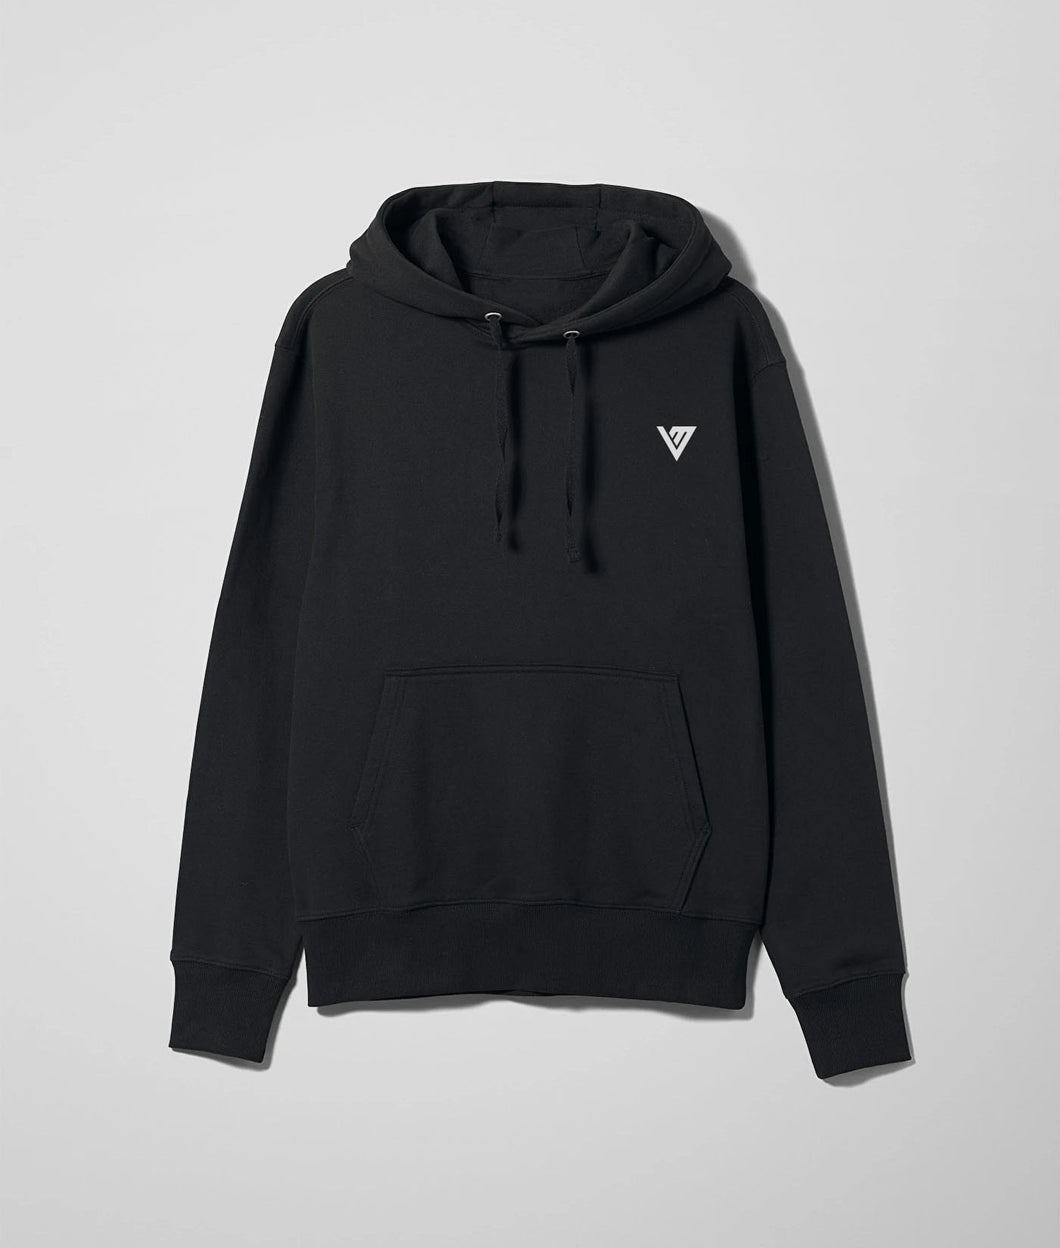 Virtual Modifications VM Hoodie Black - Virtual Modifications